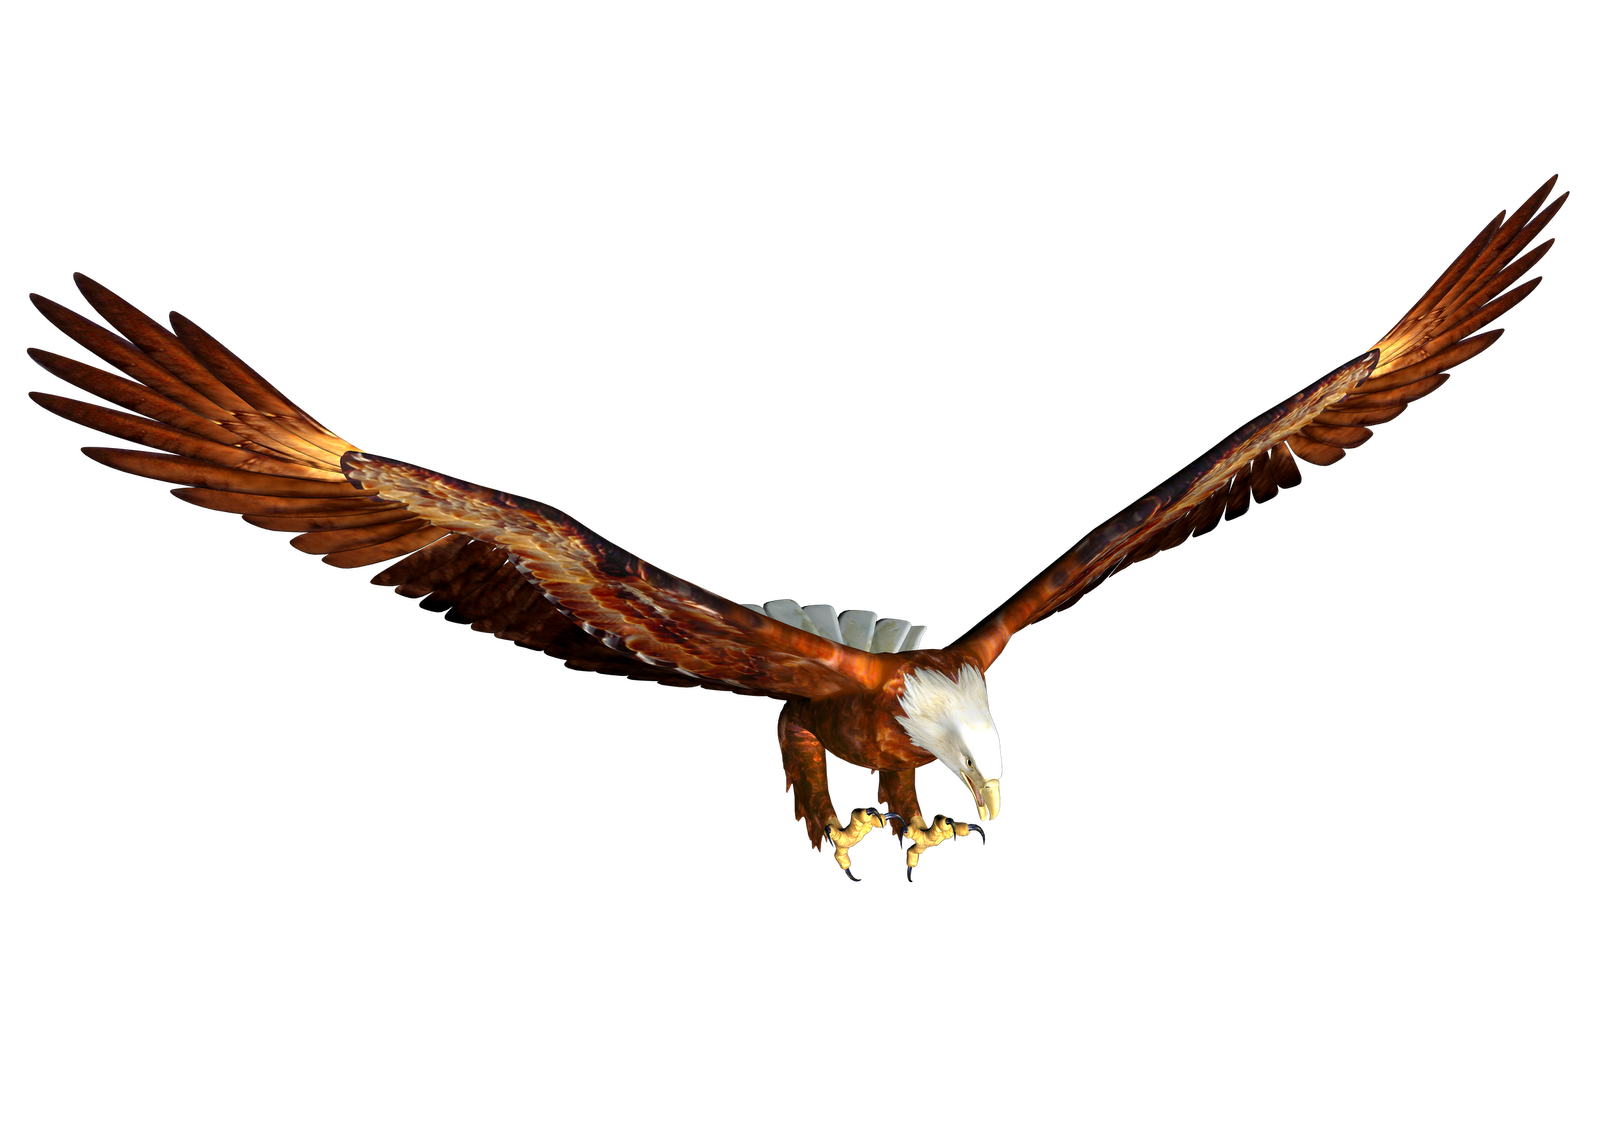 Png image free picture. Eagle clipart diving